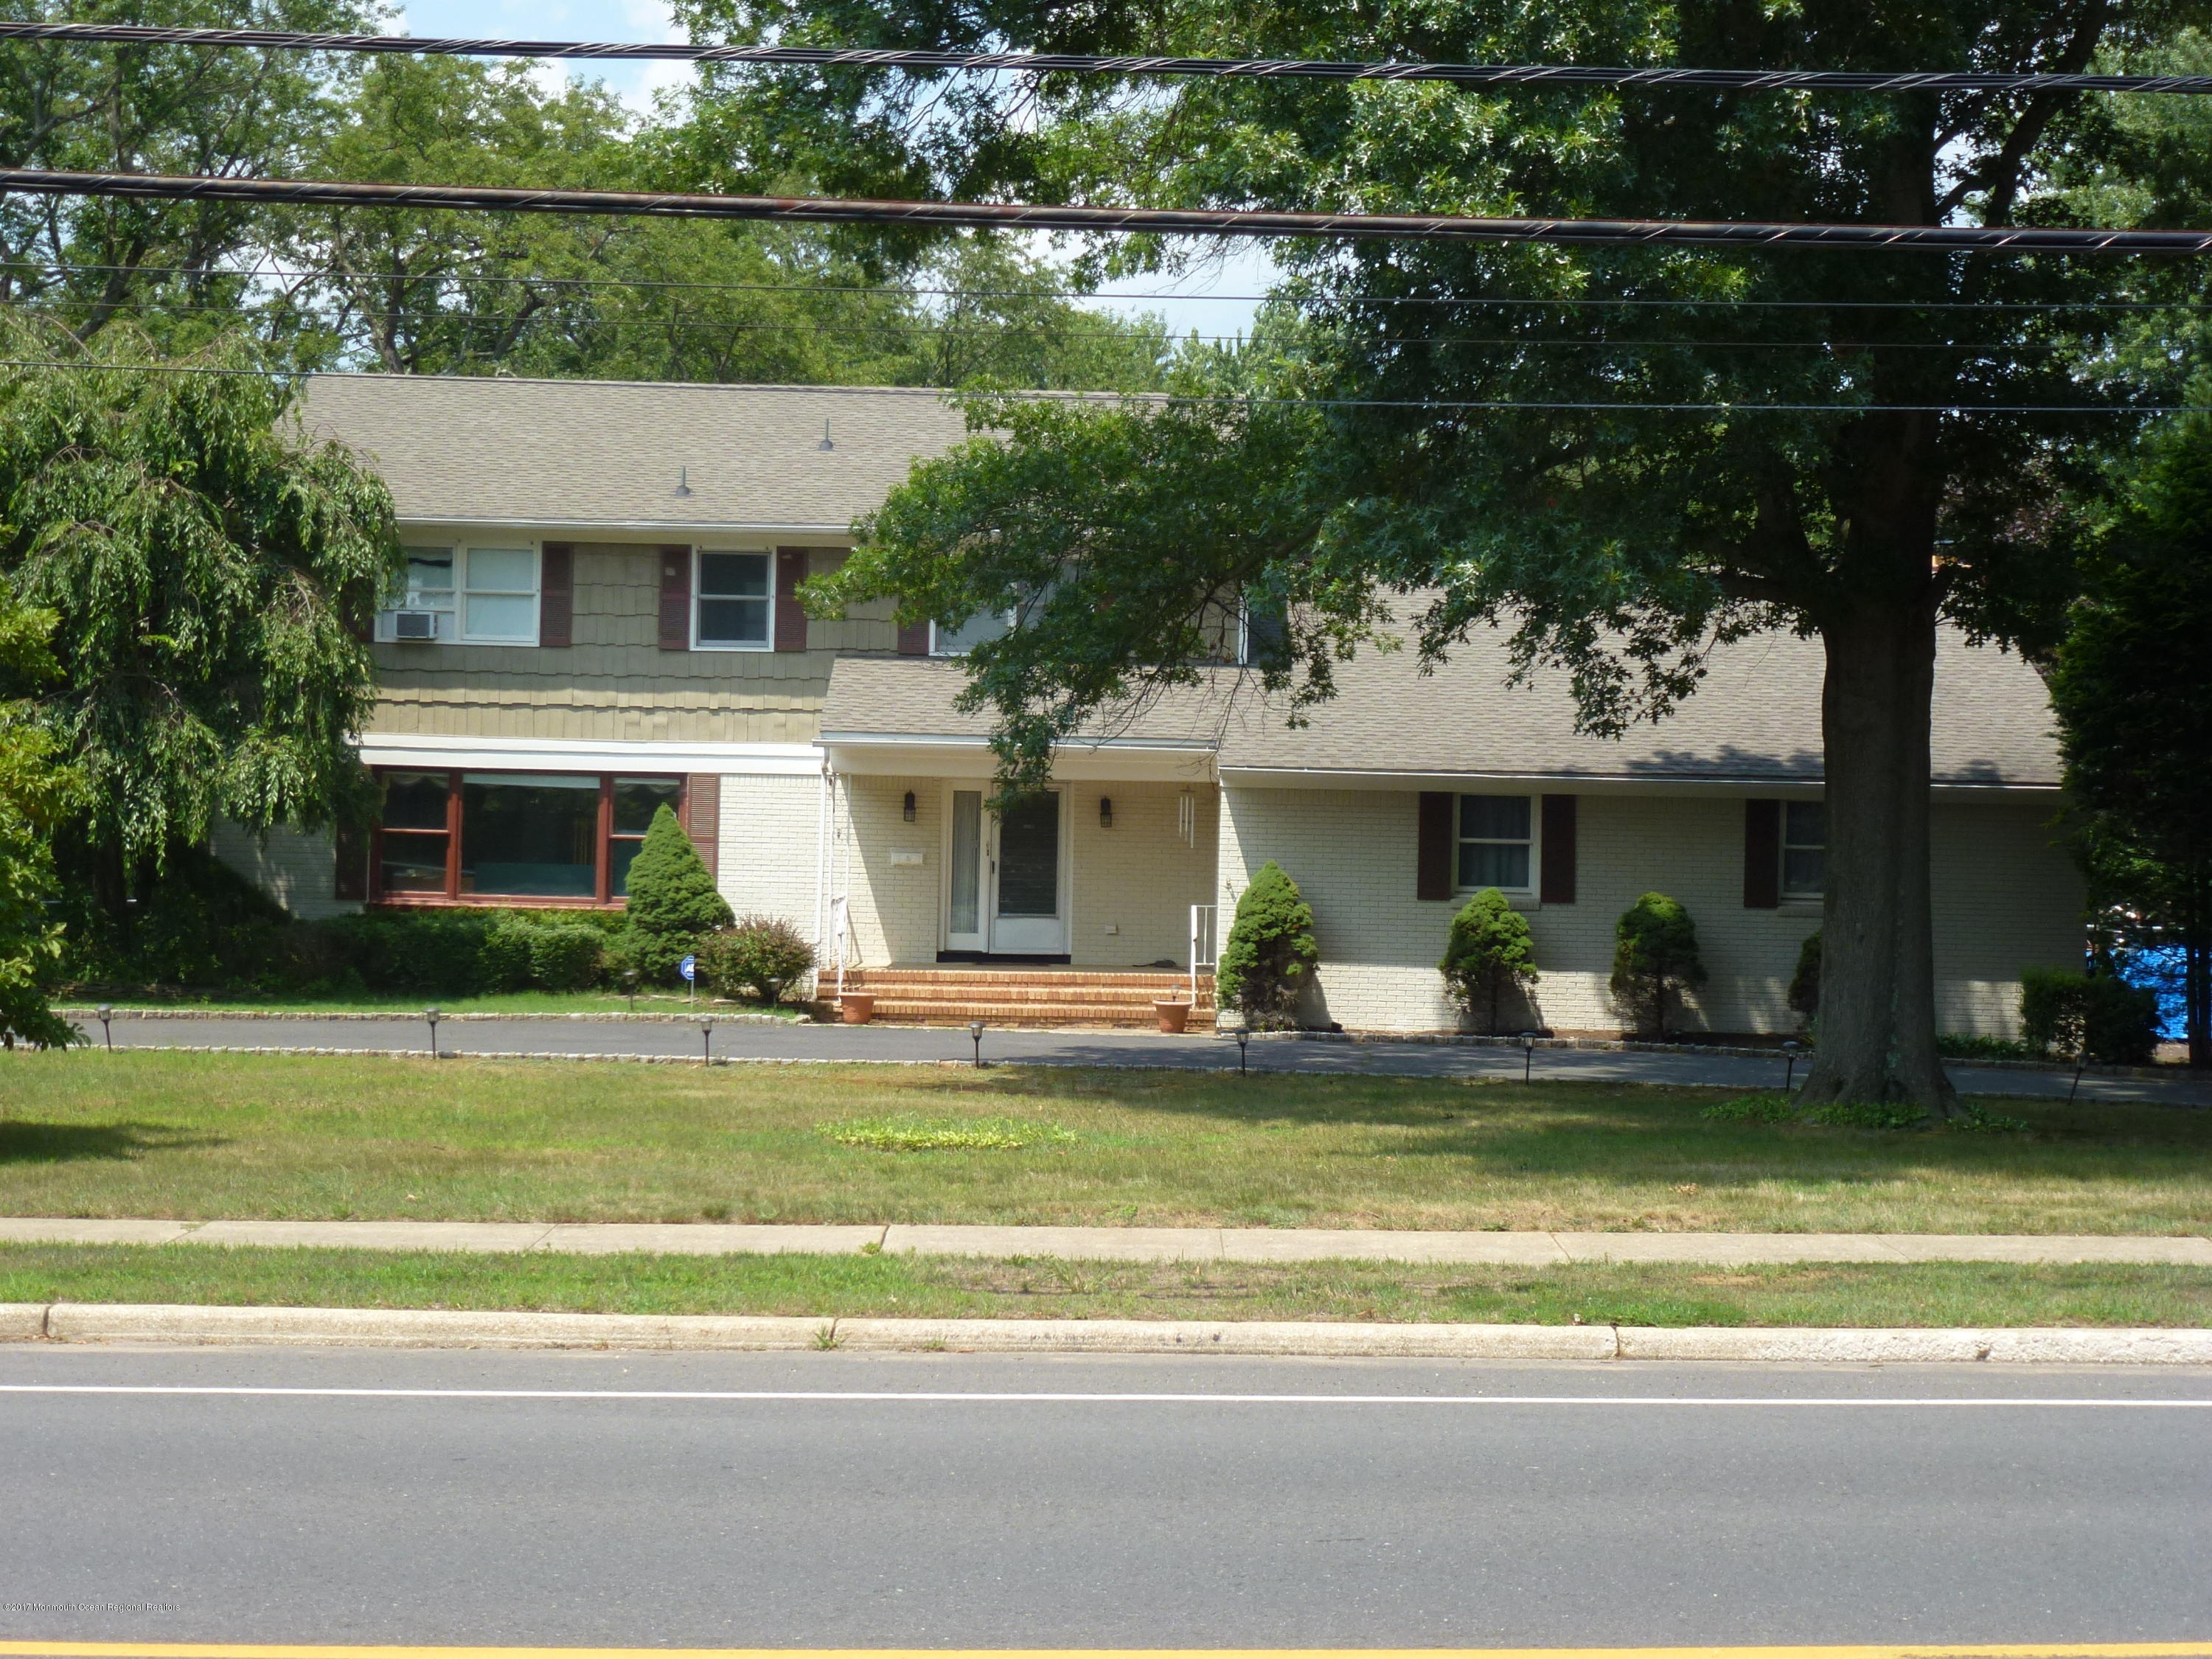 736 W FRONT STREET, RED BANK, NJ 07701